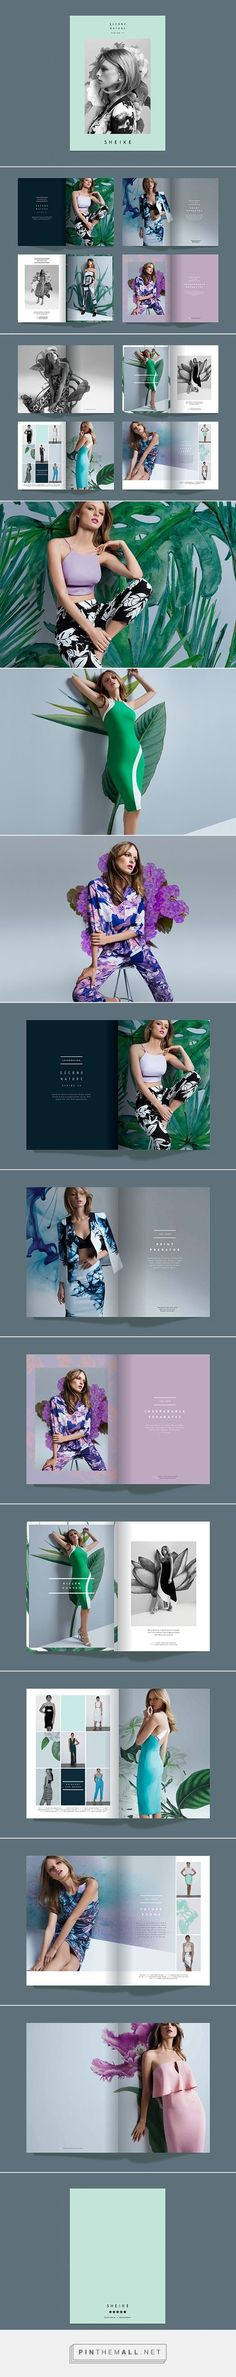 Lookbook Layouts, Brochures and Template - fashion design brochure template